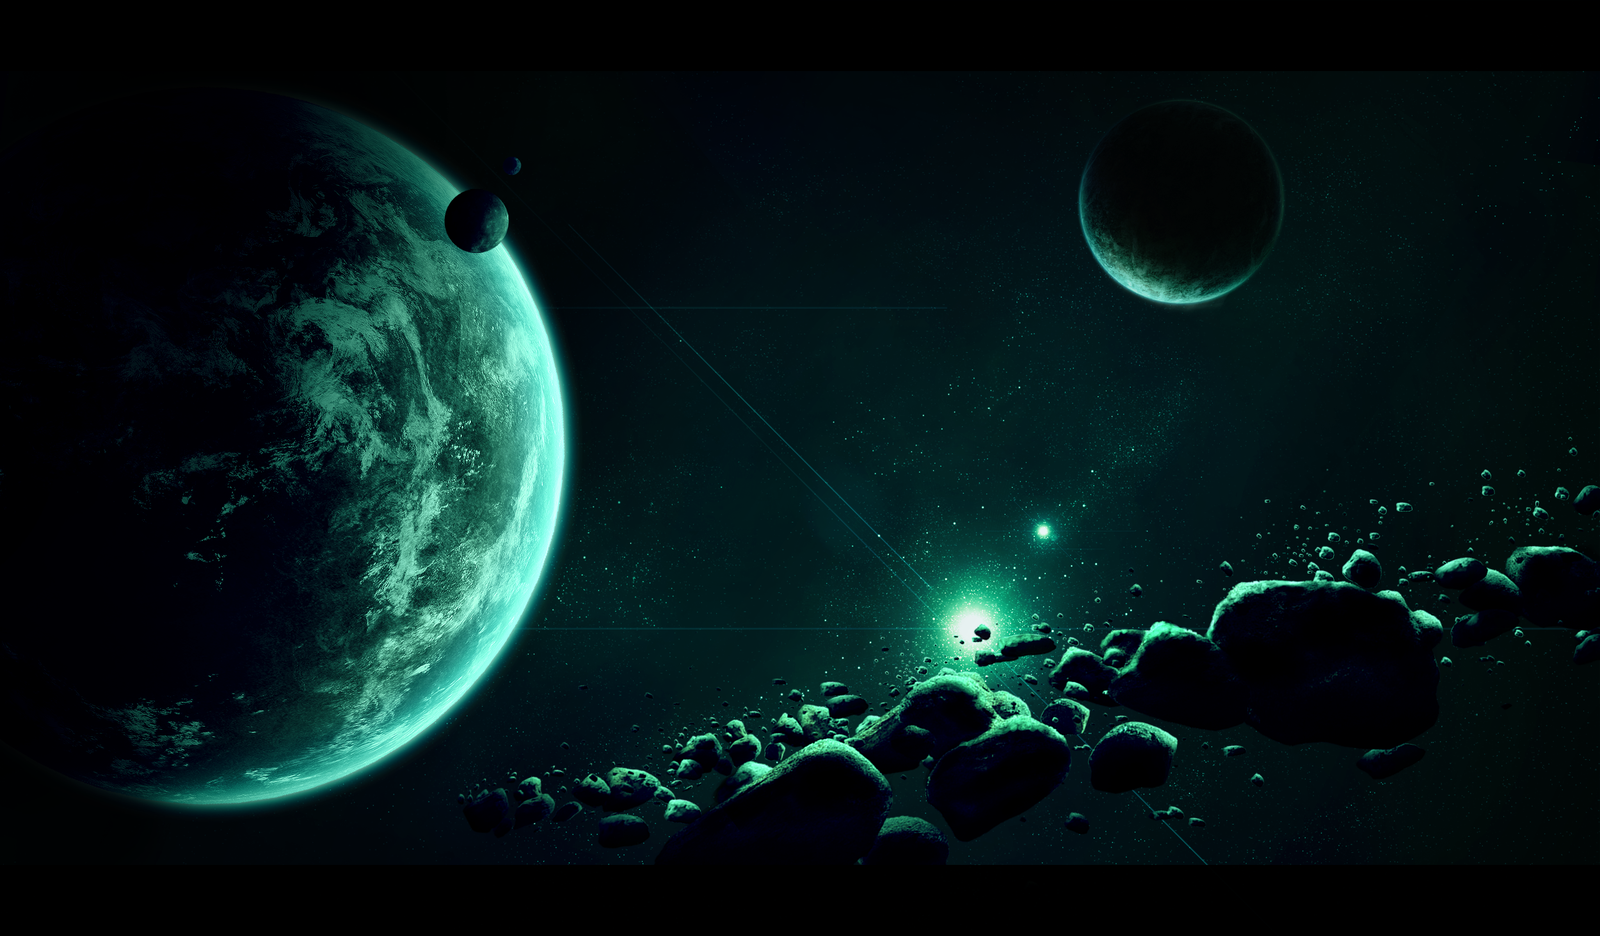 5.9 Epiloge - No hope left? Dark__green_space_by_katenfelix-d31f5oo